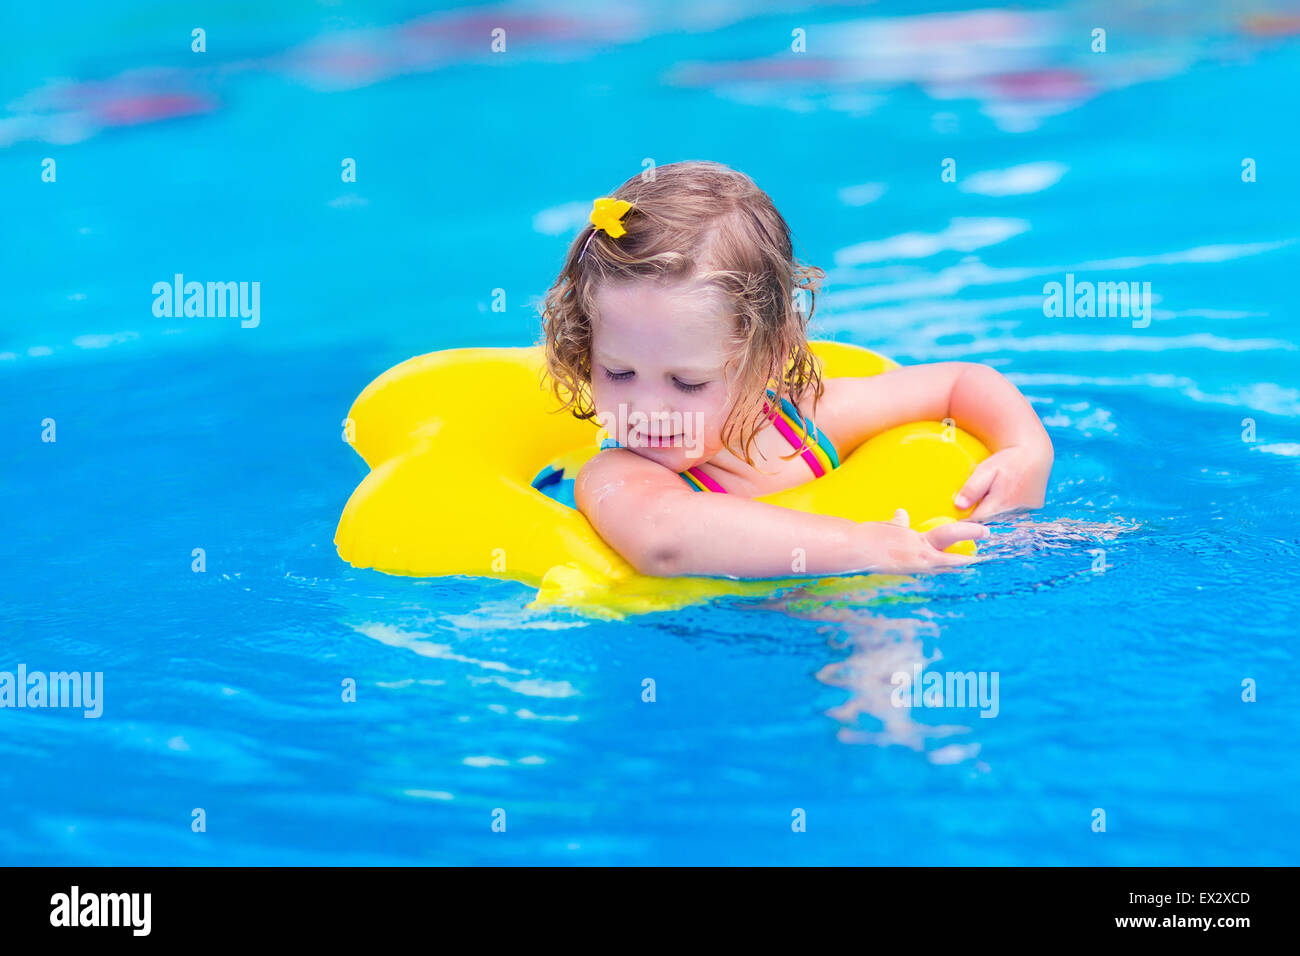 Kids In Swimming Pool Children Swim Outdoors Toddler Child During Stock Photo Royalty Free